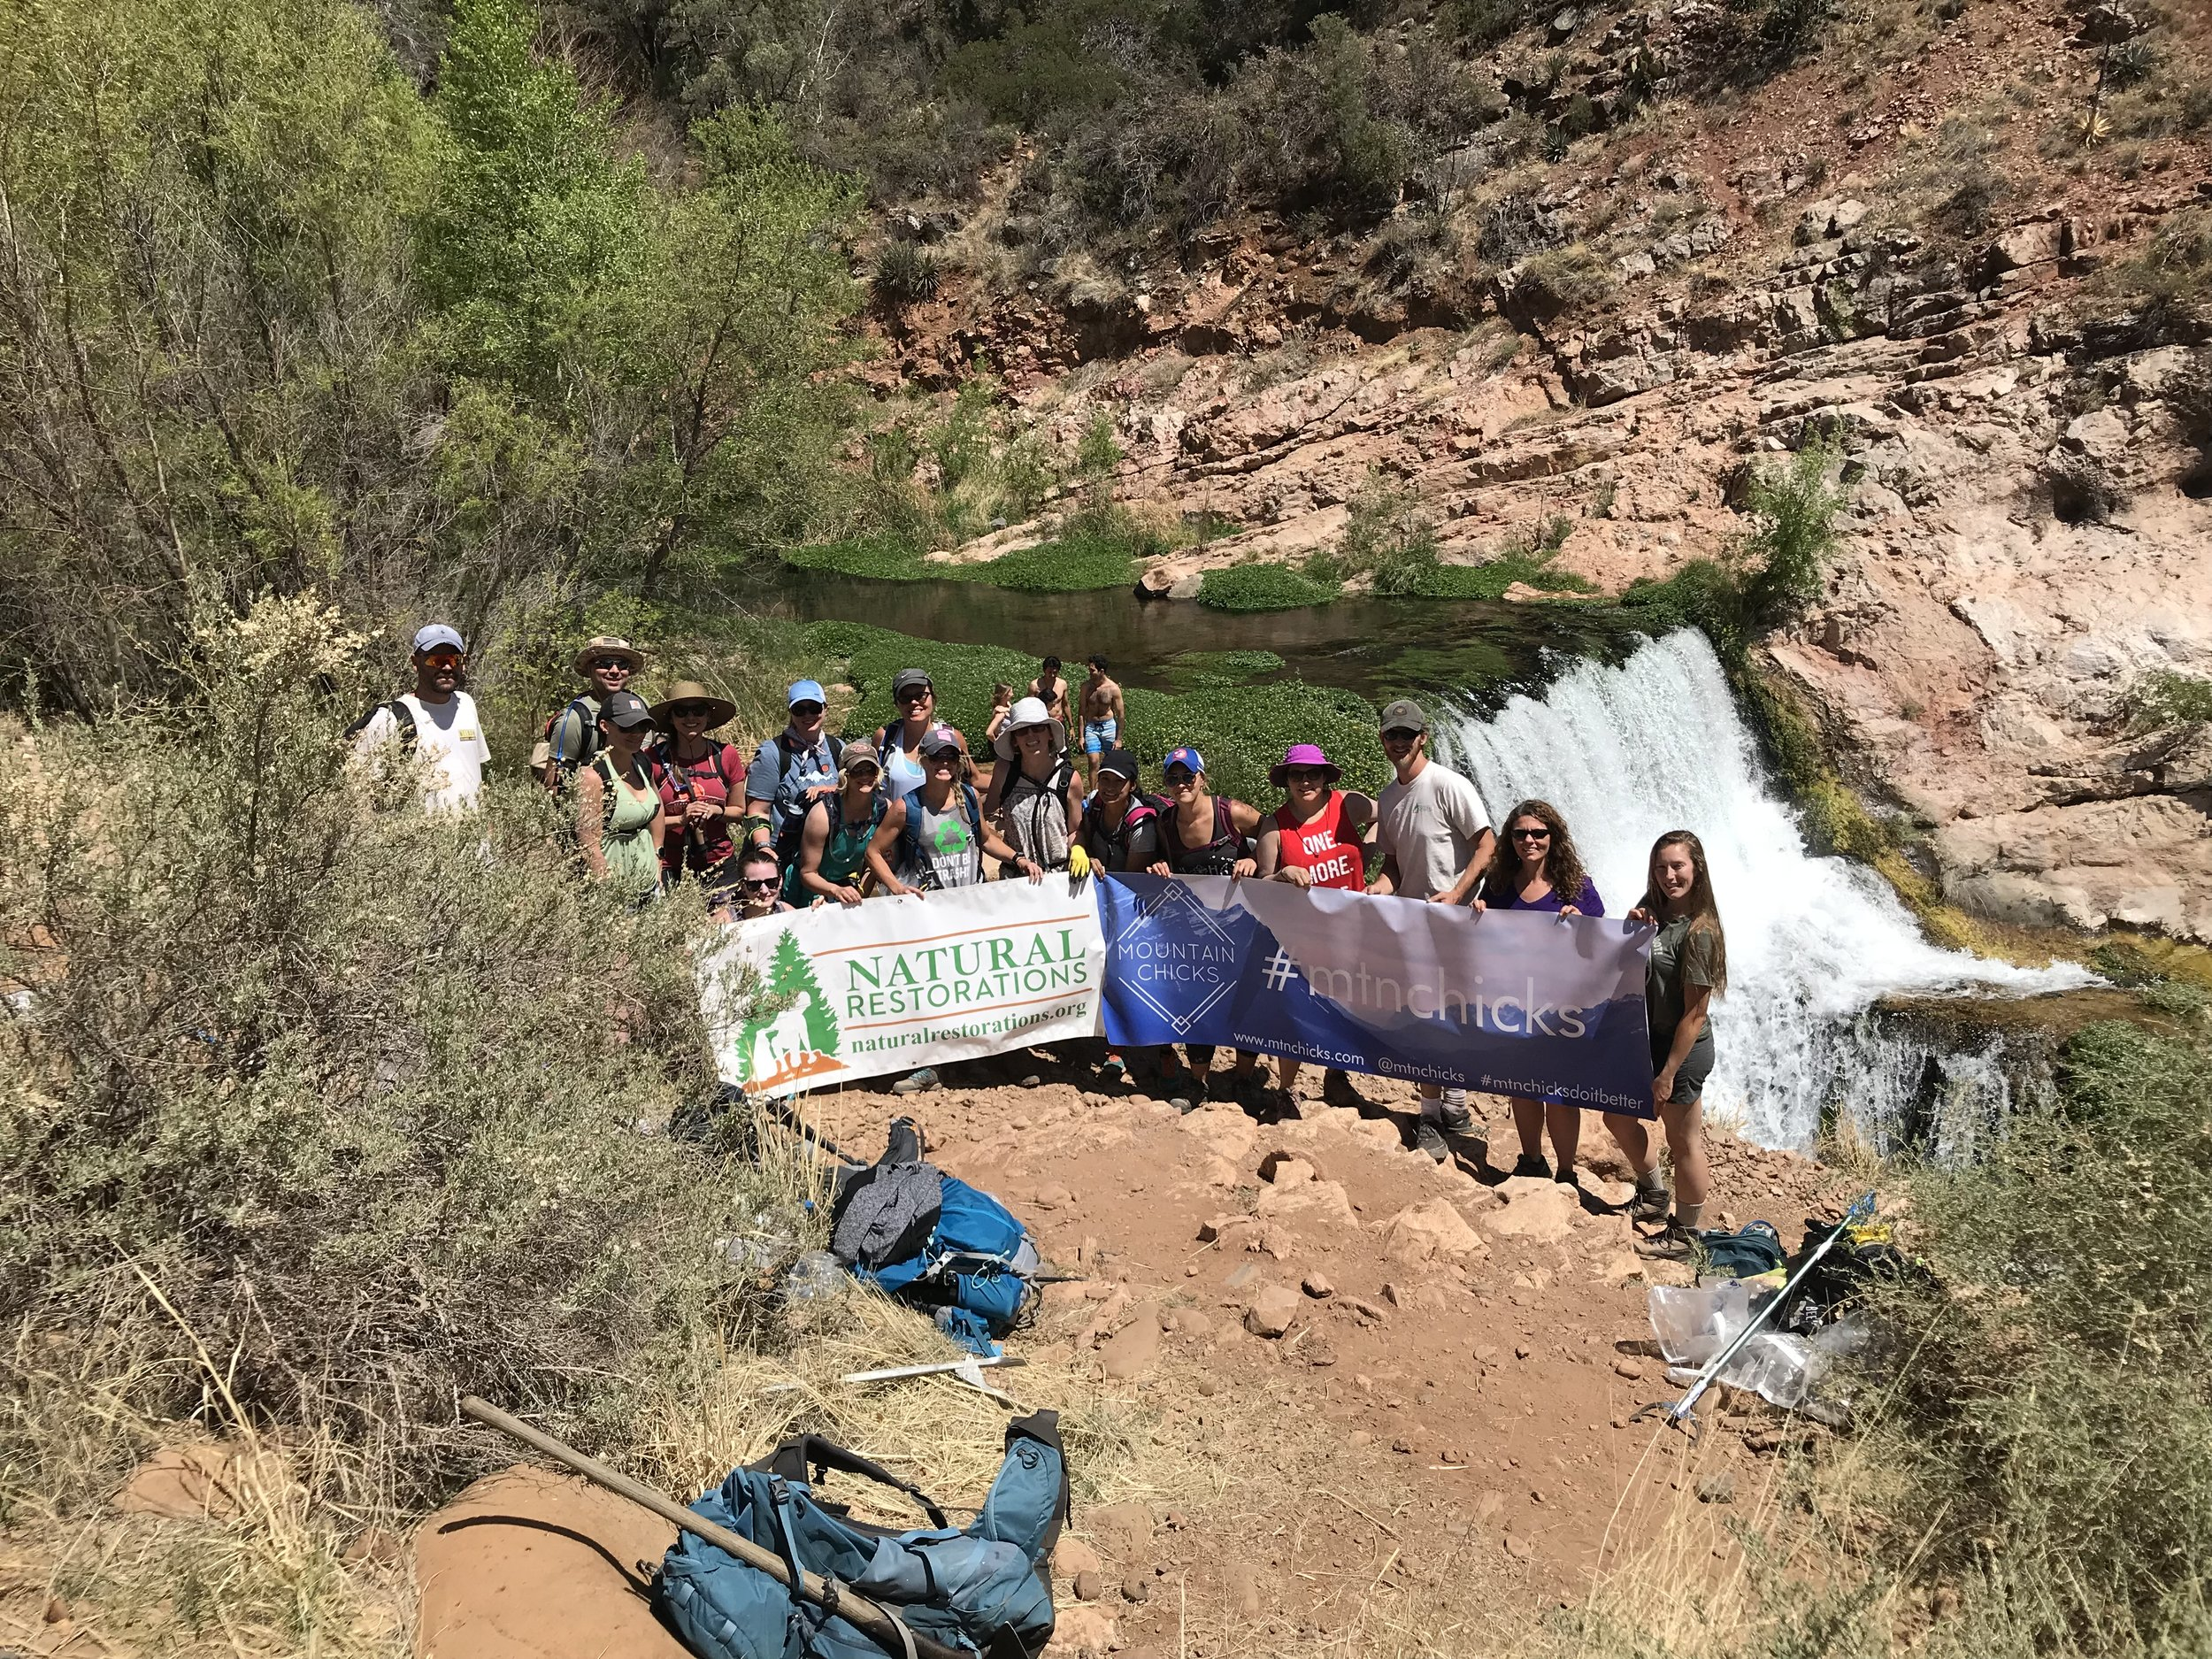 04/22/18 - Earth Day Cleanup at Fossil Springs with Mountain Chicks.Click HERE to view the entire restoration.